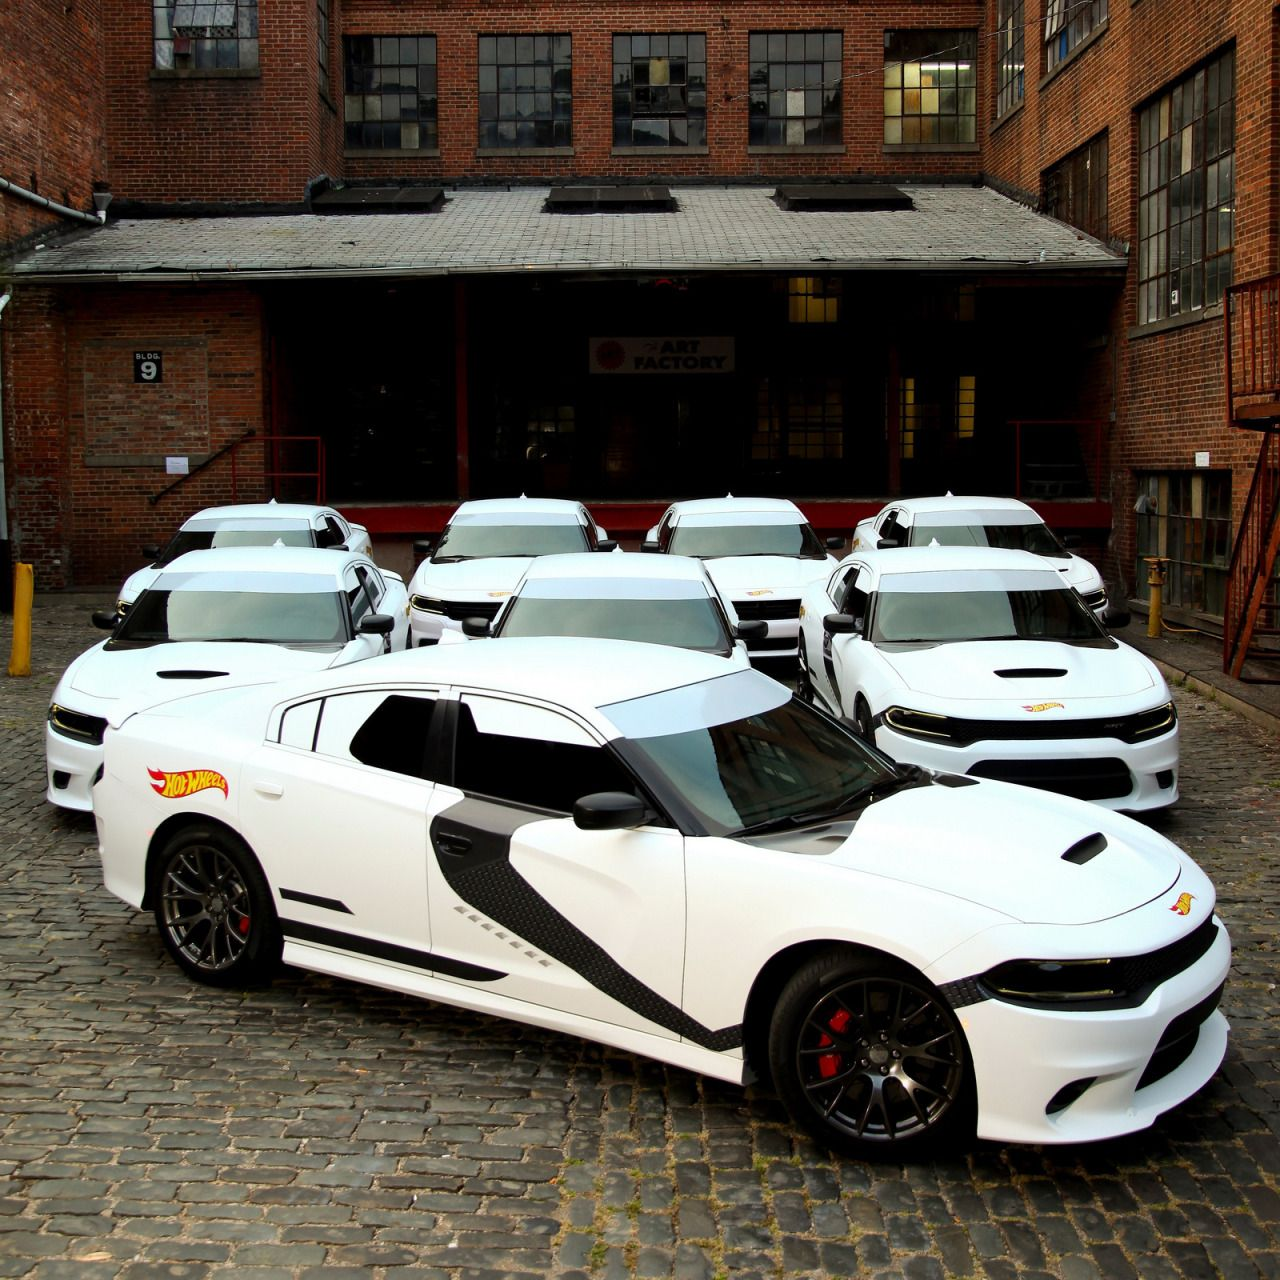 Superieur Stormtrooper Themed Dodge Chargers Gave Free Uber Rides In New York City  #stormtrooper #